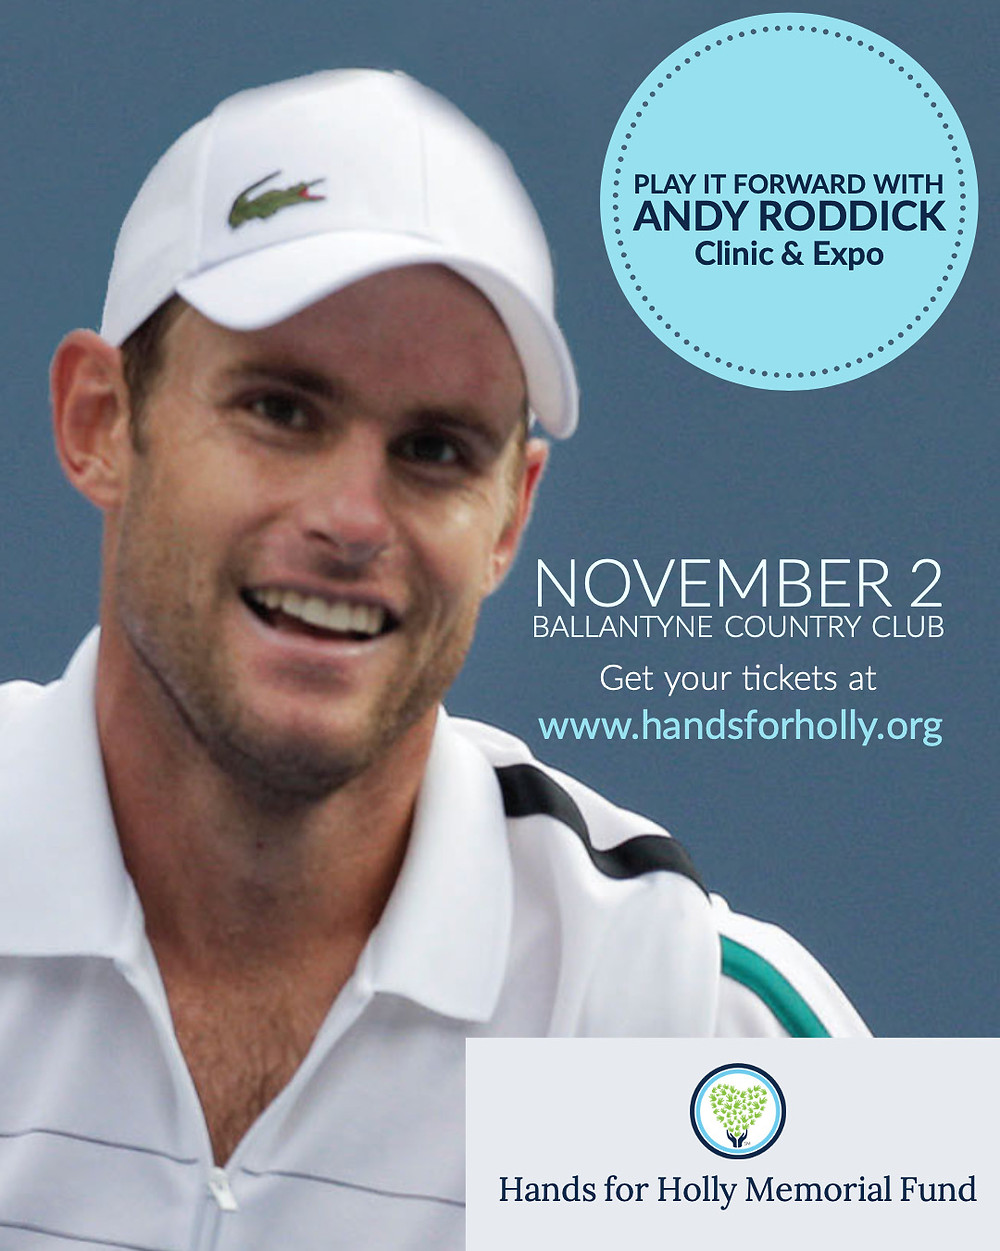 Play it Forward with Andy Roddick Event to benefit Hands for Holly Memorial Fund